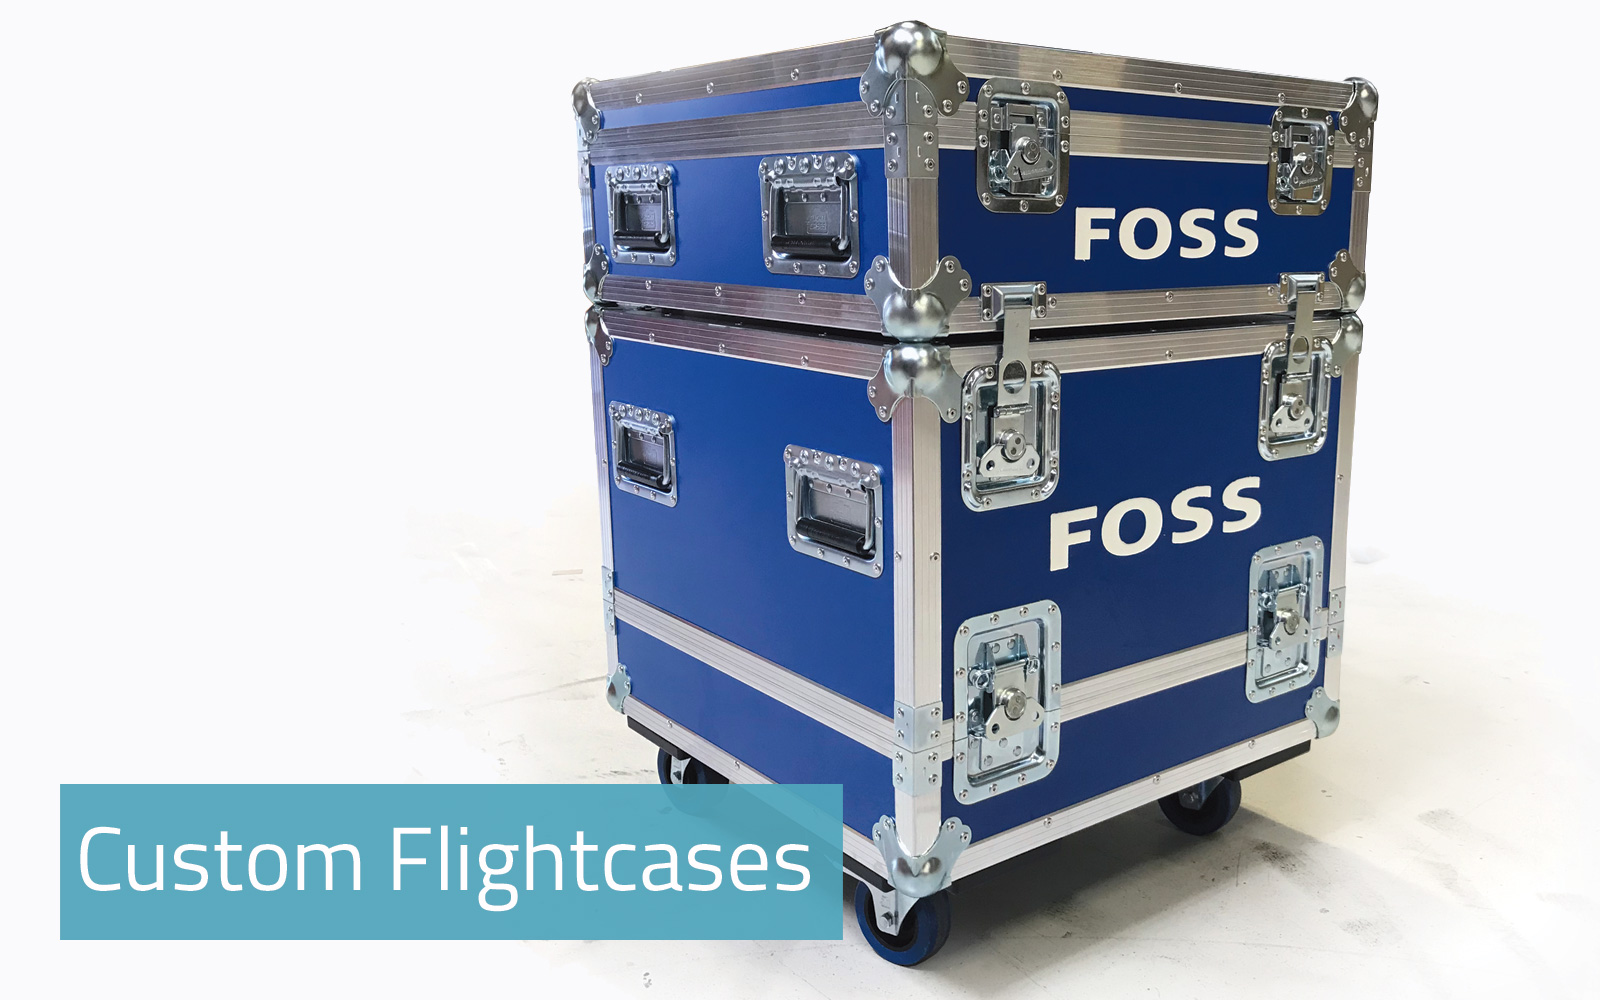 More about our Custom Flightcases